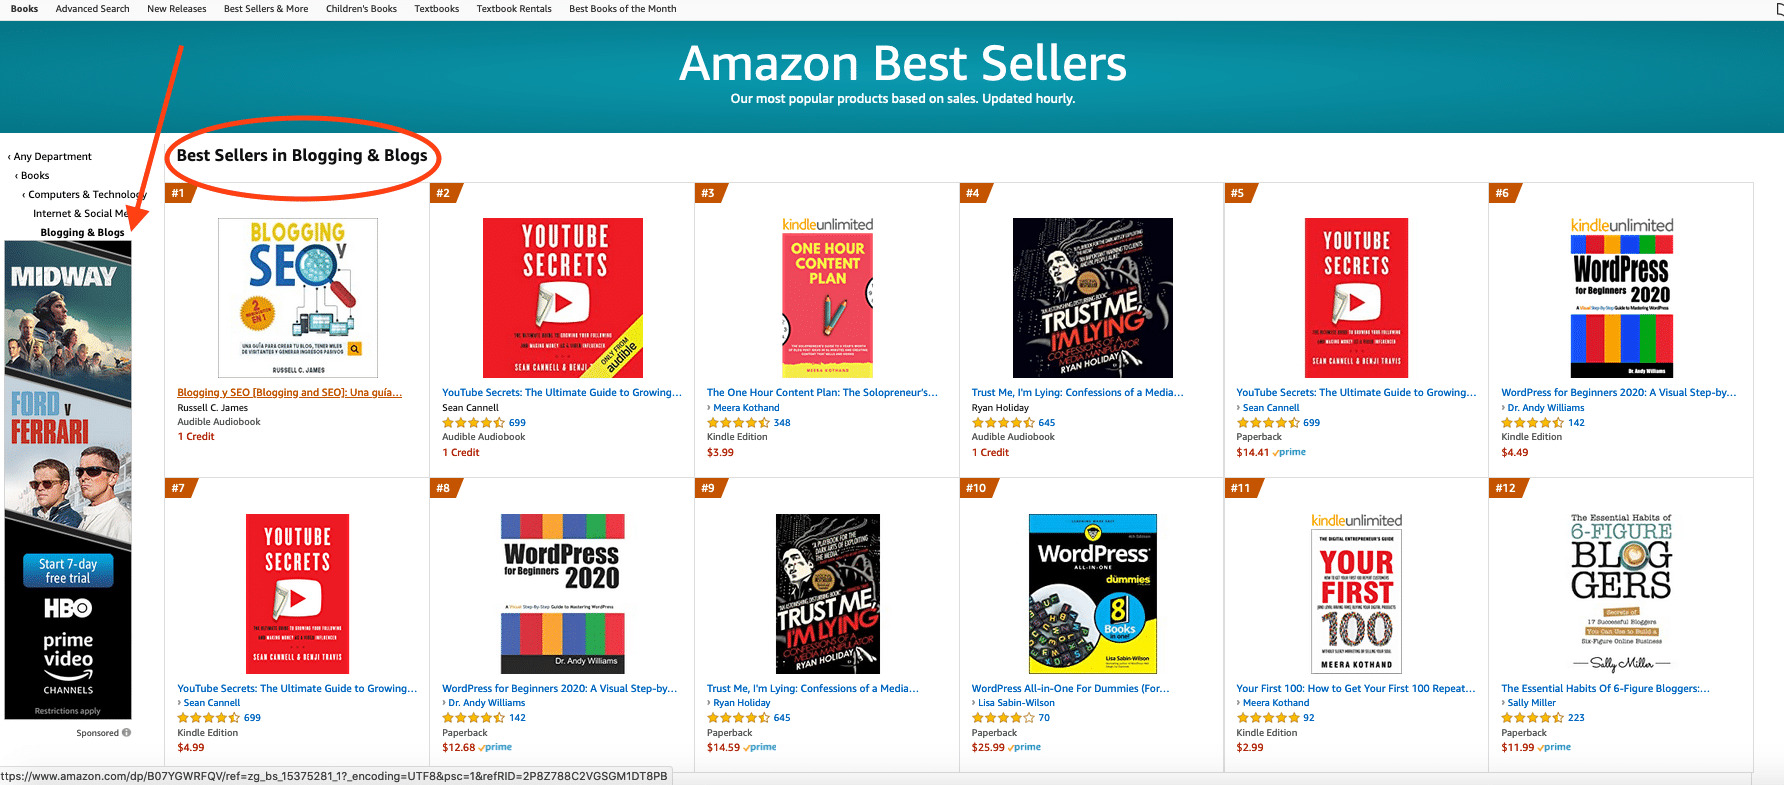 Blogging Bestseller list on Amazon